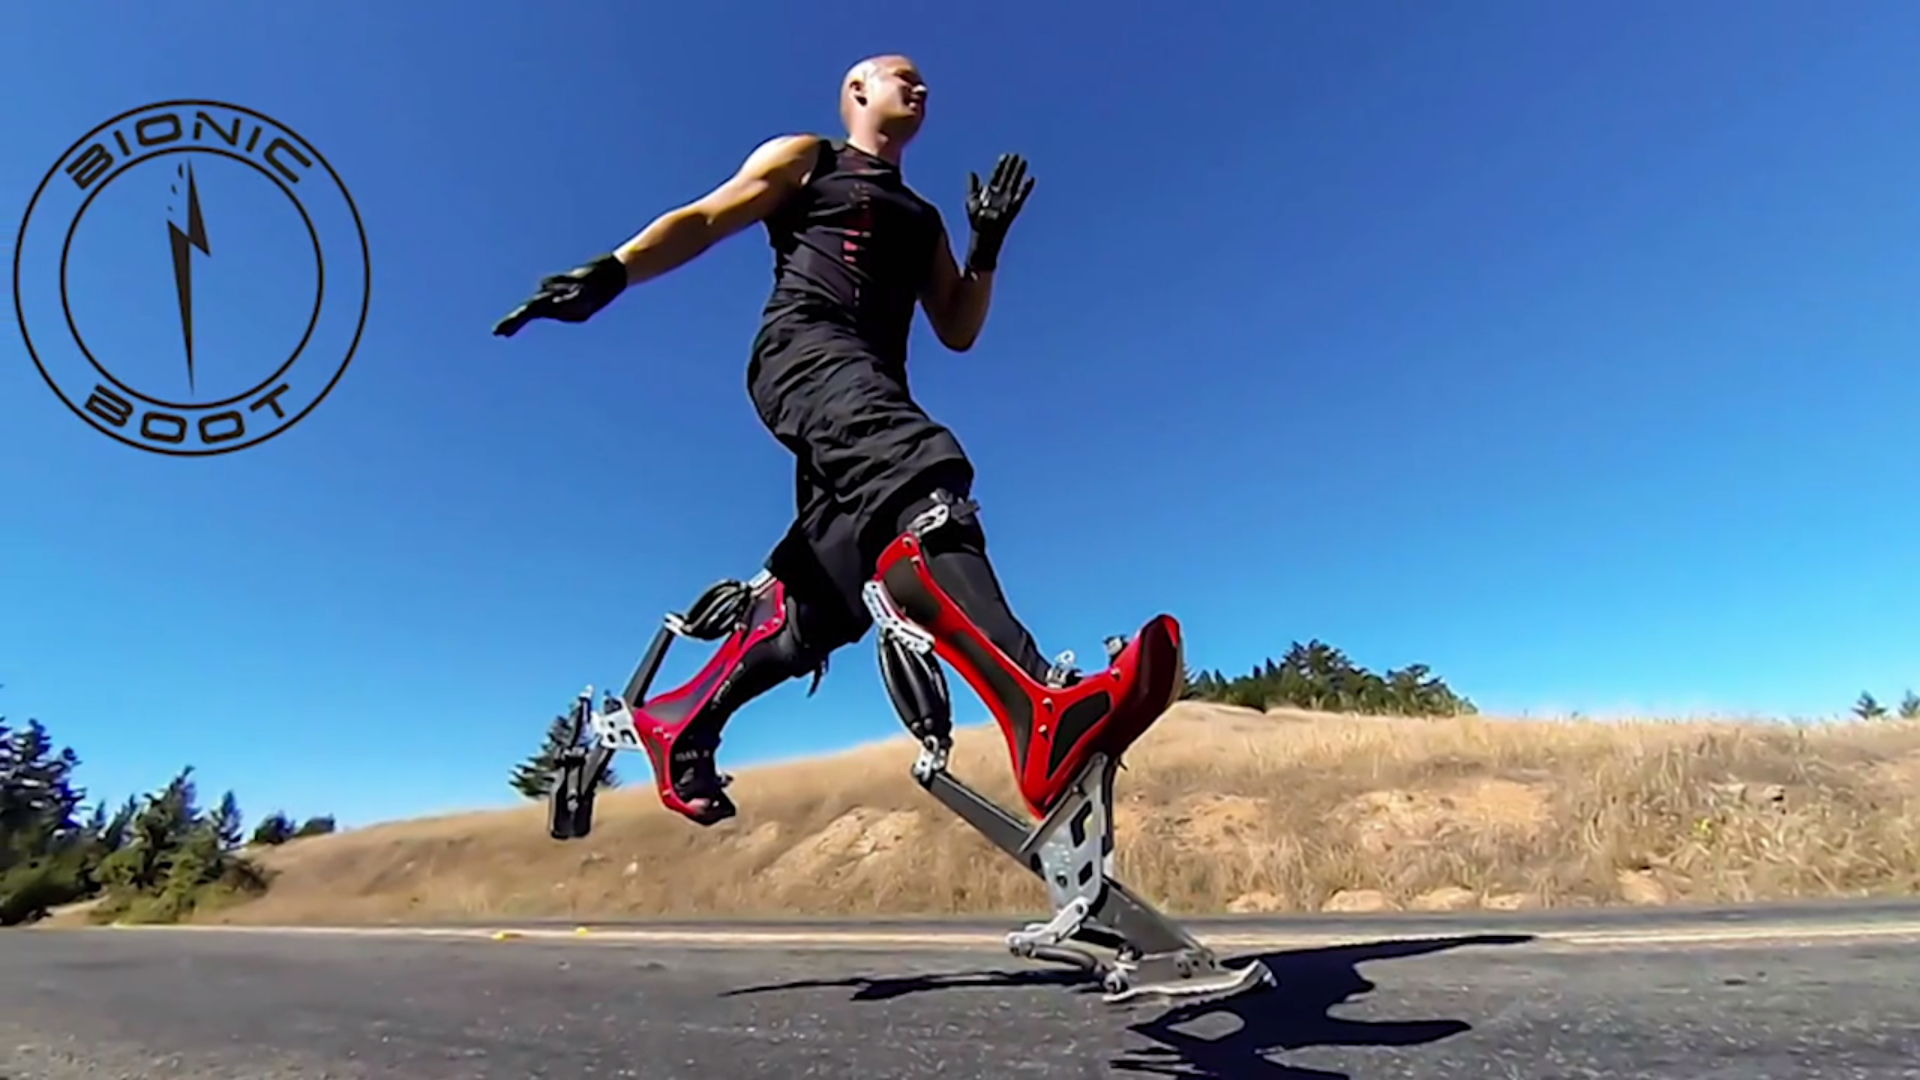 Video: Bionic Boots That Let You Run Up